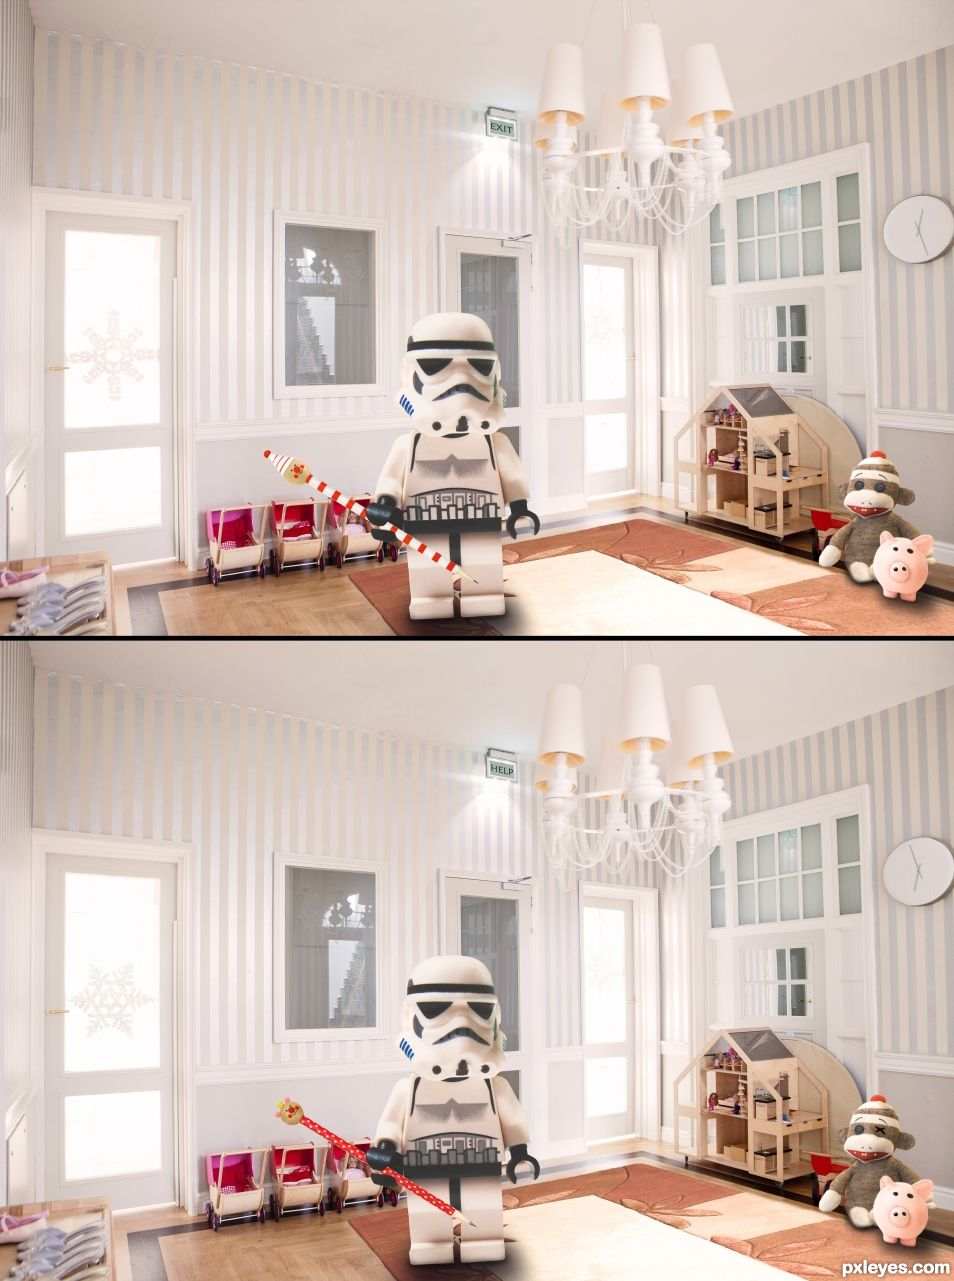 Can you spot the 7 differences?